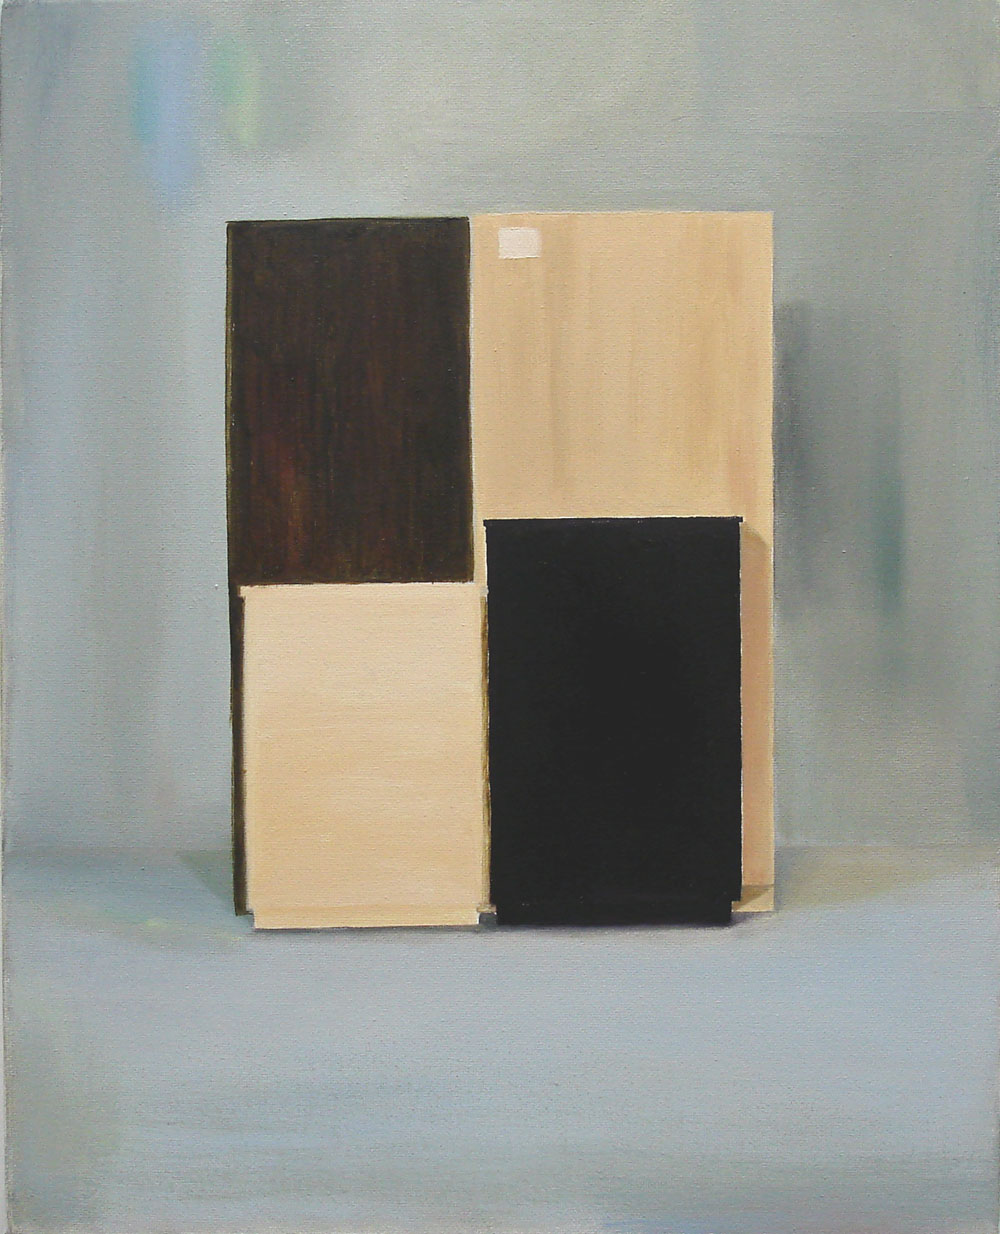 Furniture    2010, oil on canvas, 30 x 24cm